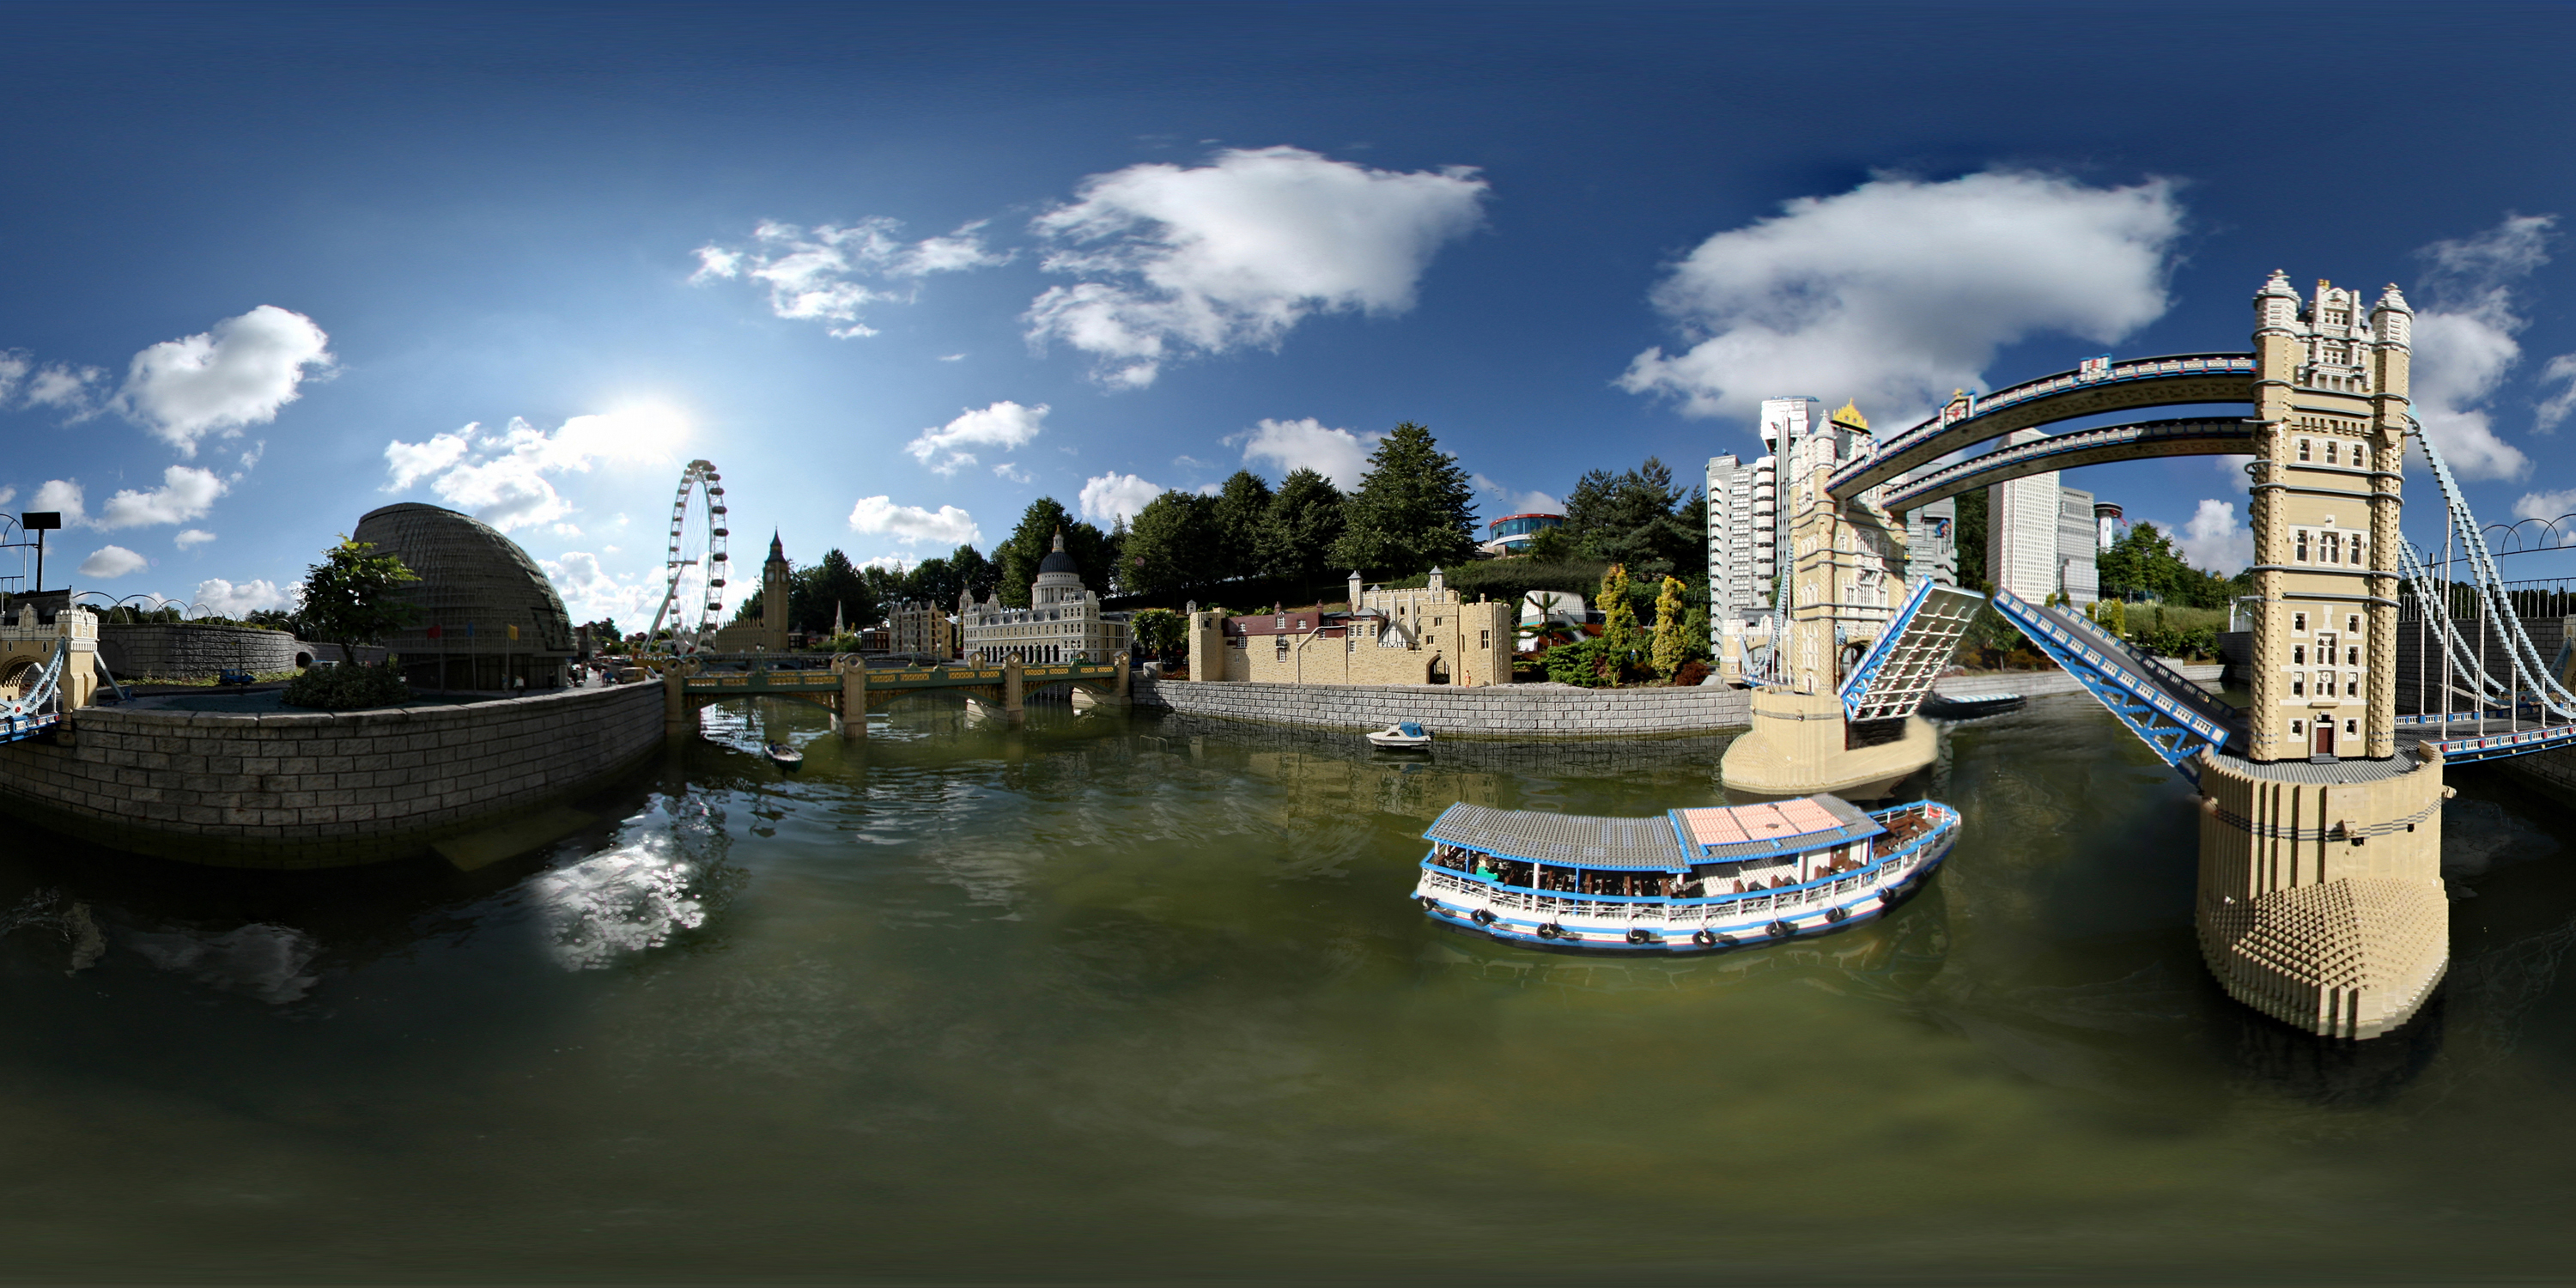 Legoland - Windsor, UK